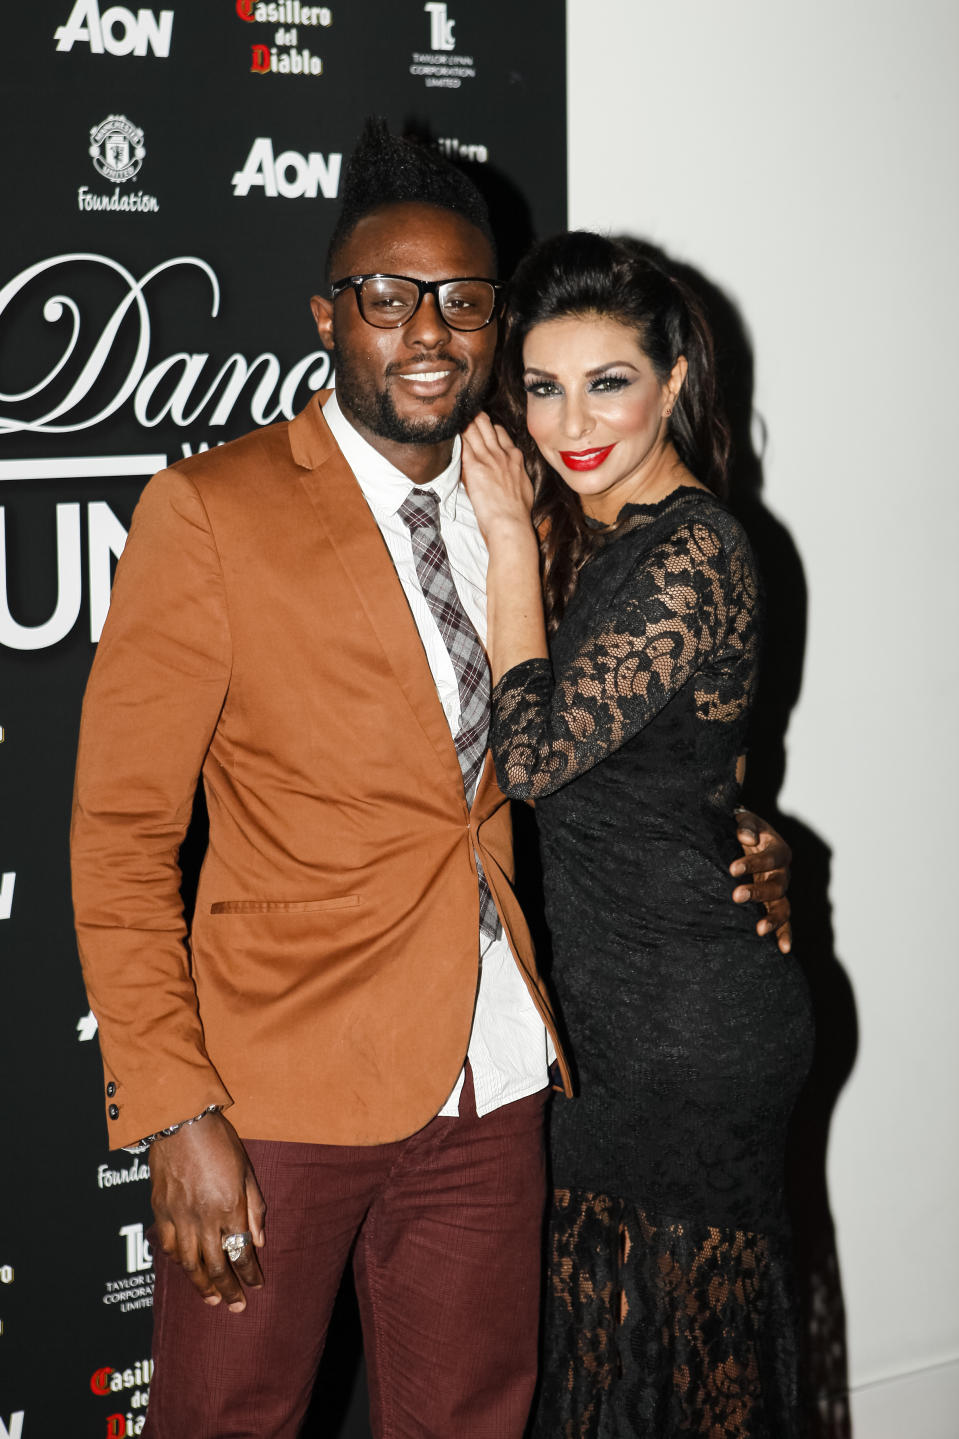 Shobna Gulati with former boyfriend, This Morning TV runner Anthony BRown. (Photo by Andrew Benge/WireImage)